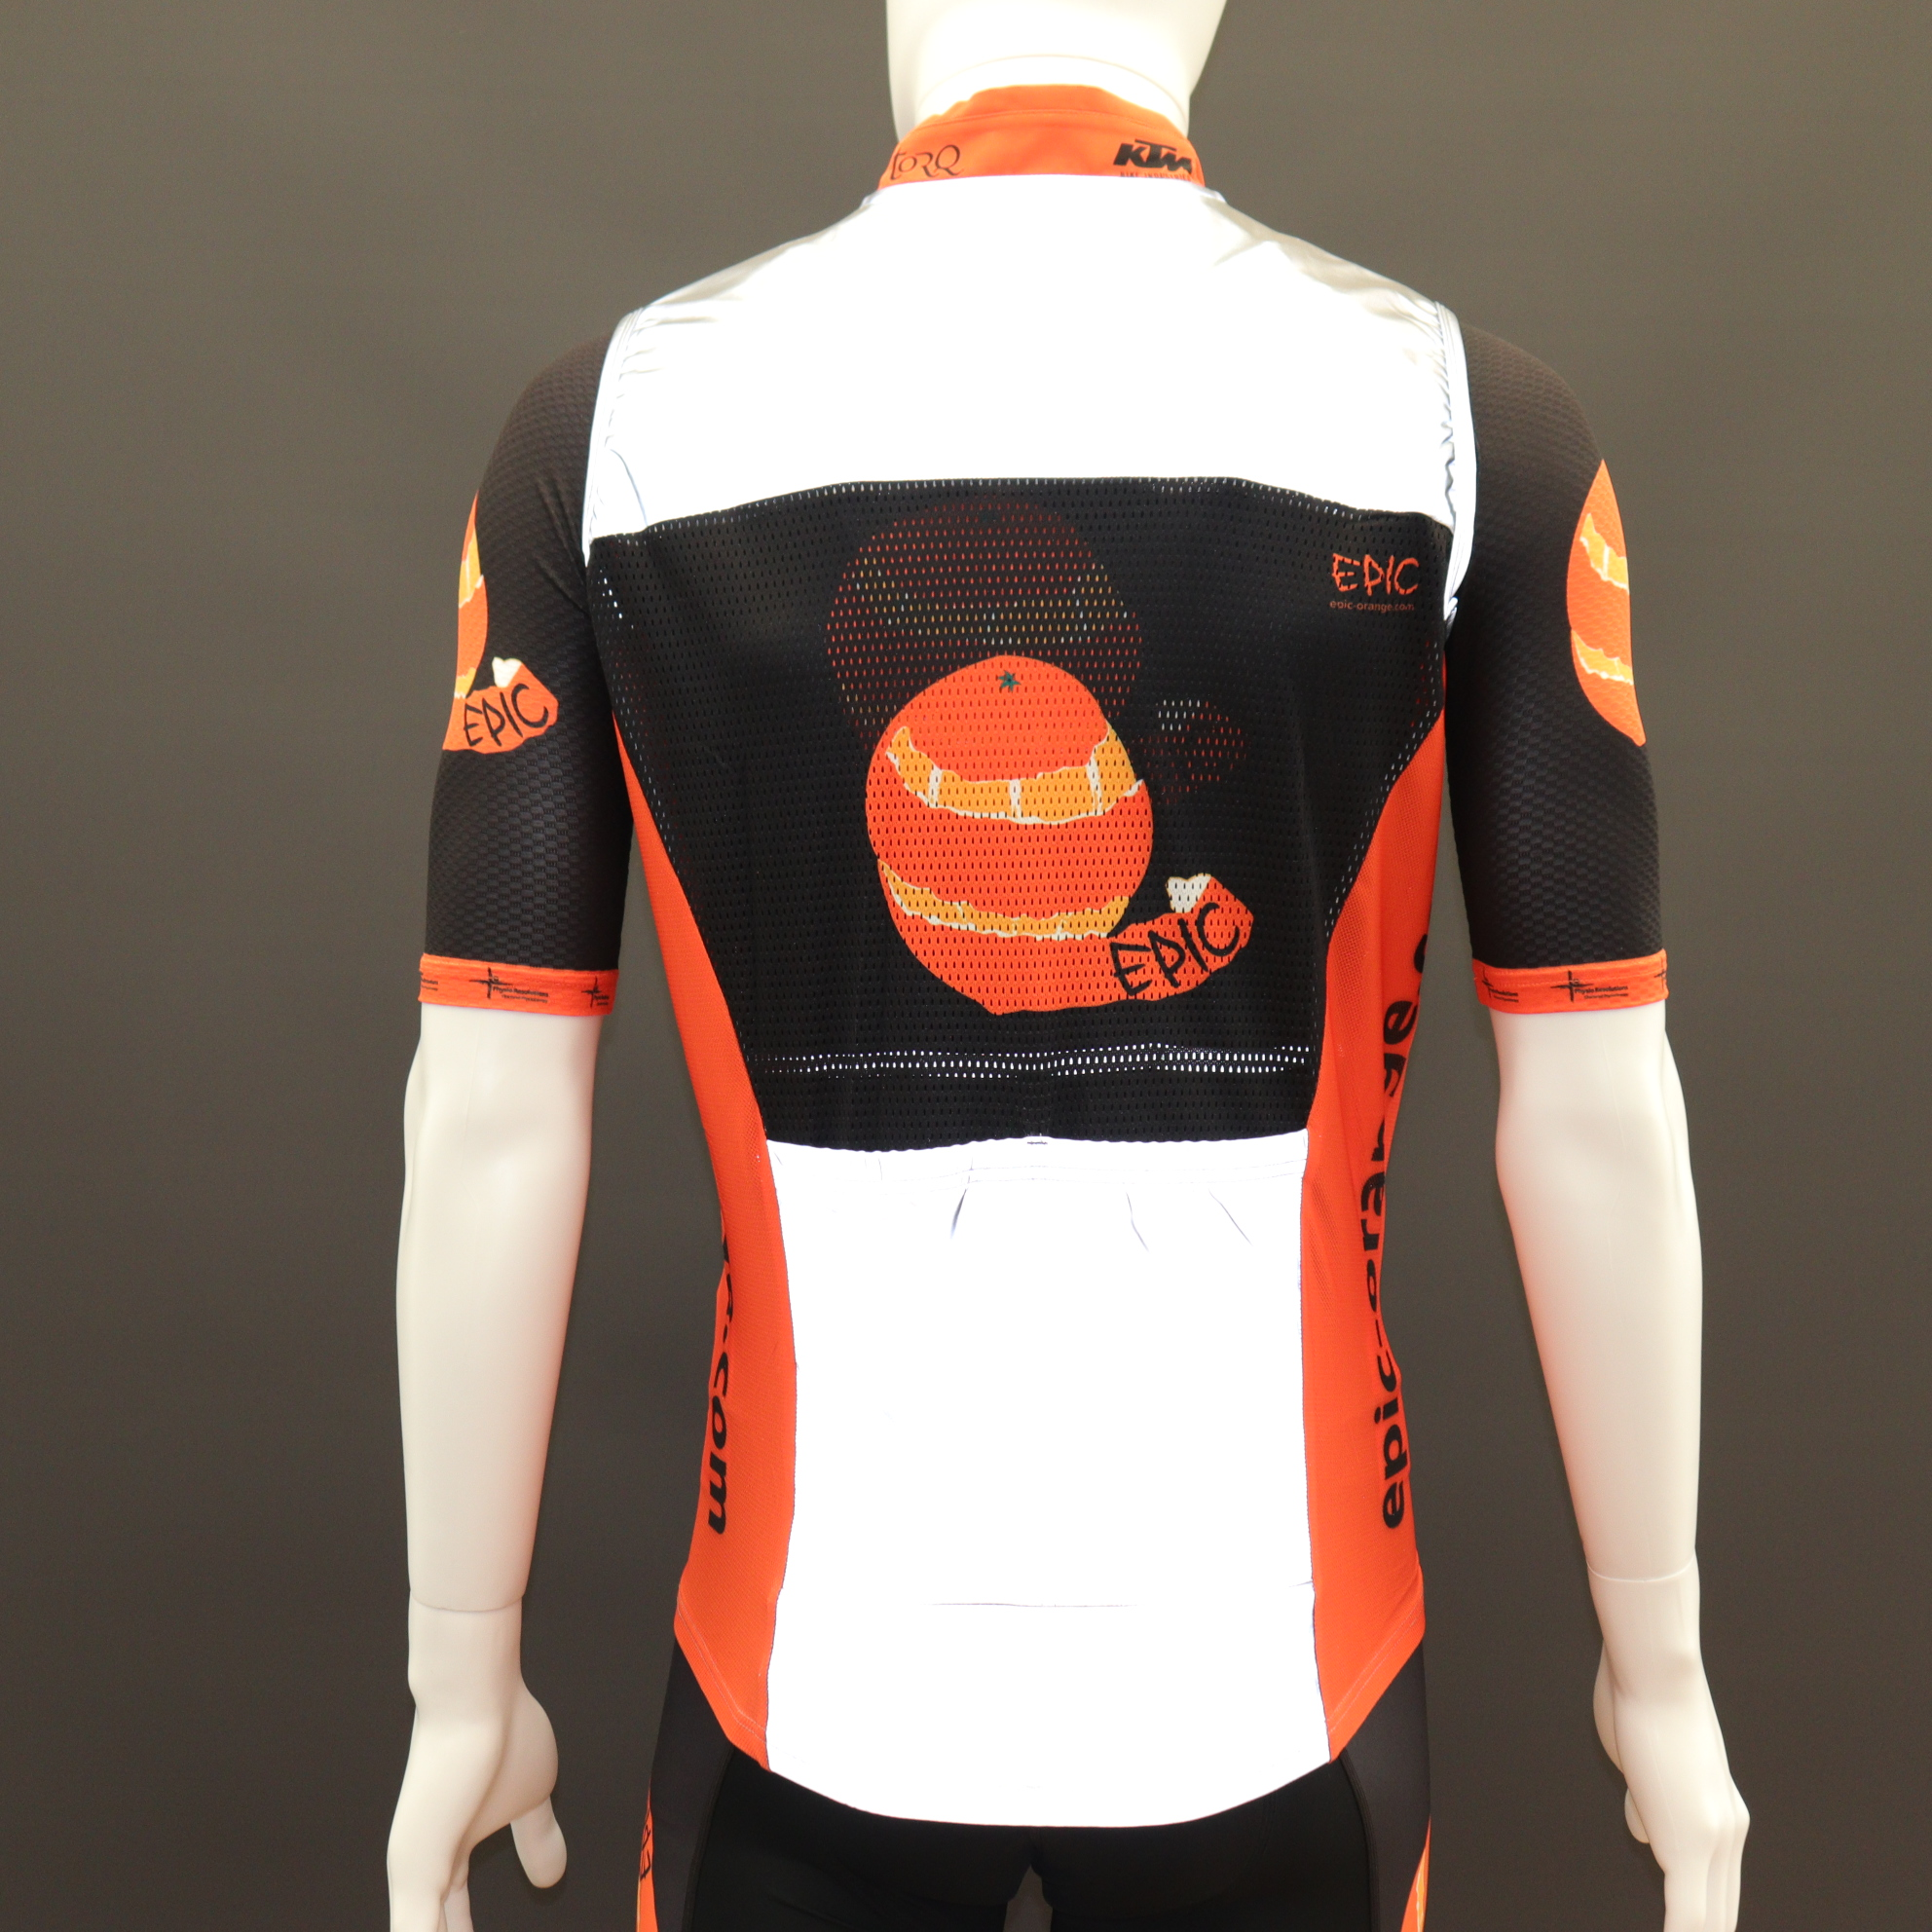 Reflective Cycle Gilets (Daylight Flash)